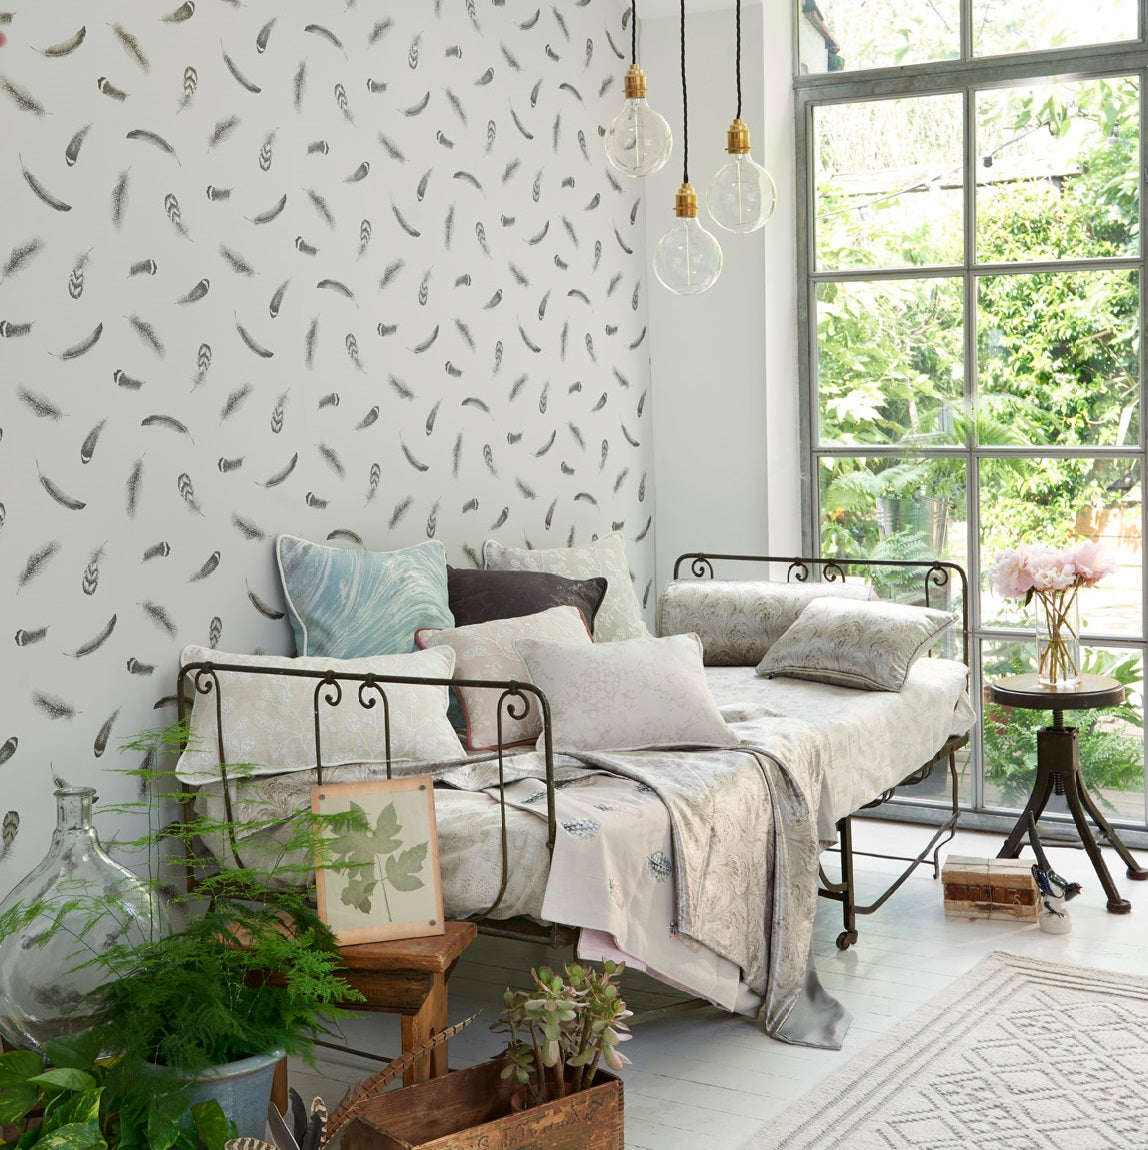 Plumis Feather | Designer Motif Wallpaper in Grey, Black & Gold/Silver